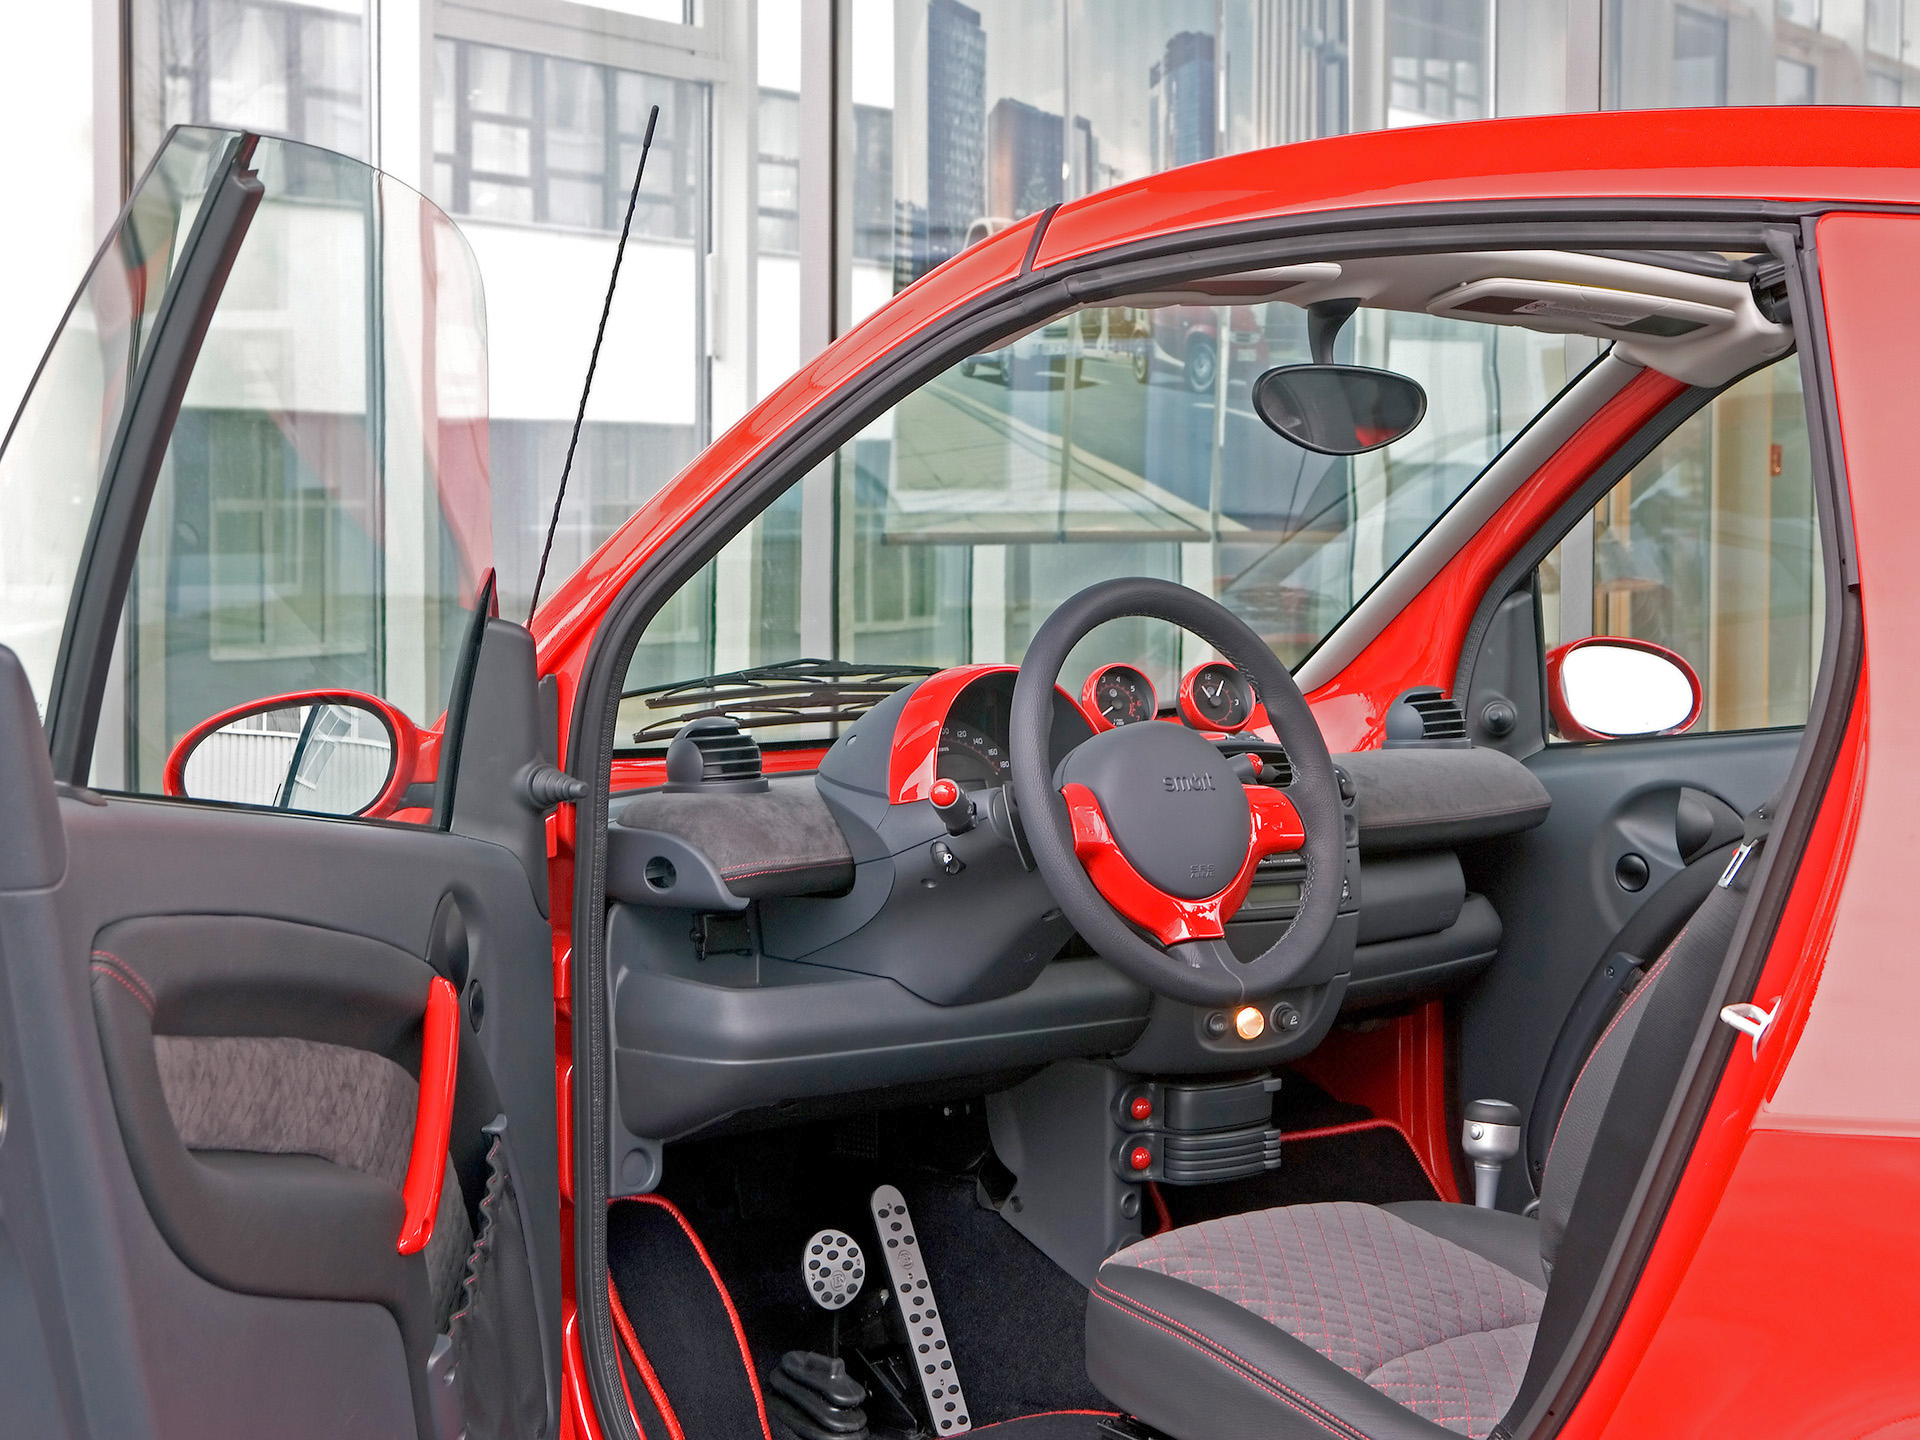 smart fortwo edition red technical details history photos on better parts ltd. Black Bedroom Furniture Sets. Home Design Ideas